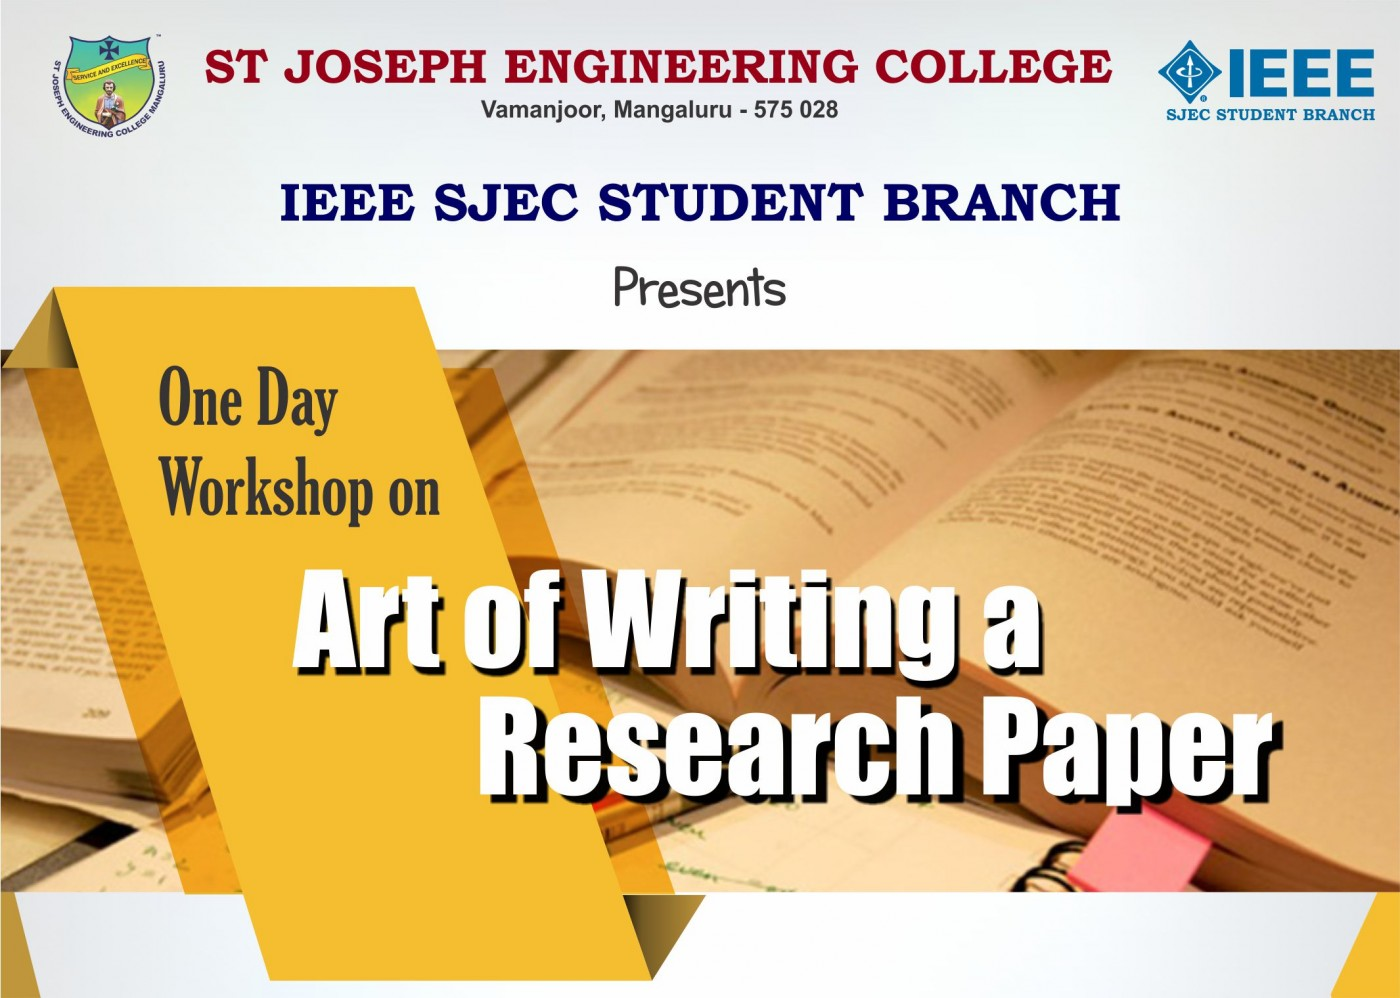 005 Workshop Banner Researchs Writing Fascinating Research Papers Best Paper Services In India Pakistan Format Example Apa 1400